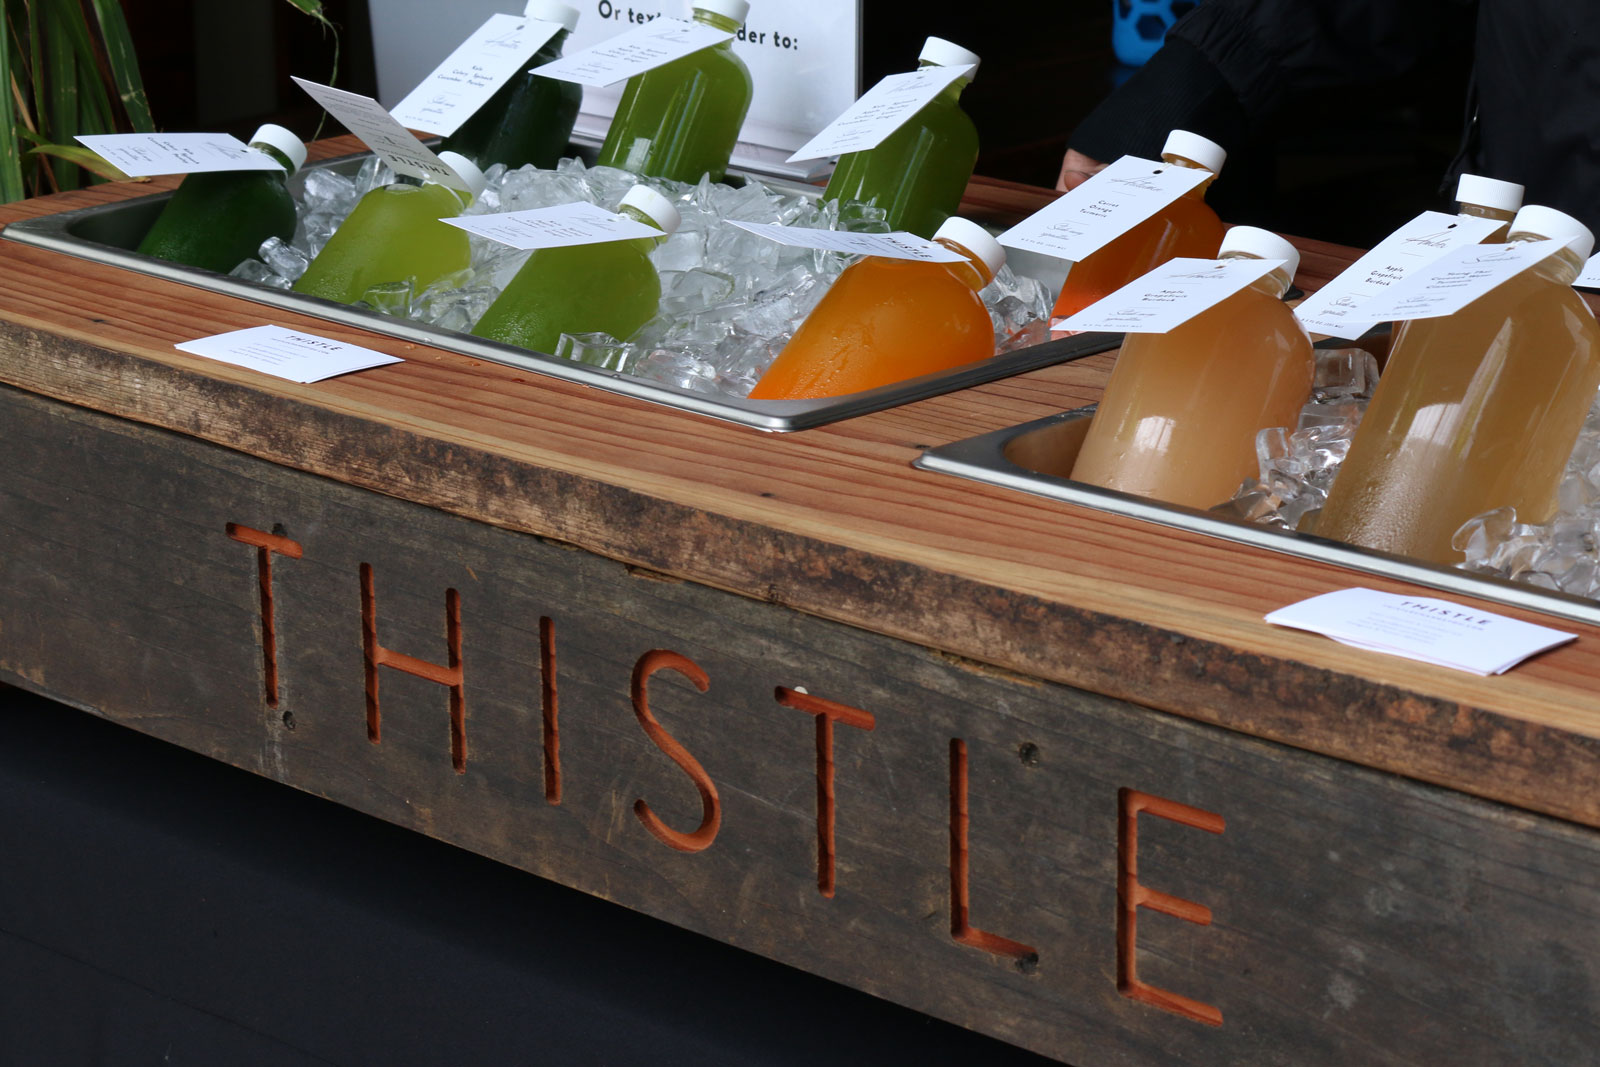 Start-Up Juice Delivery Service Launches in Mission